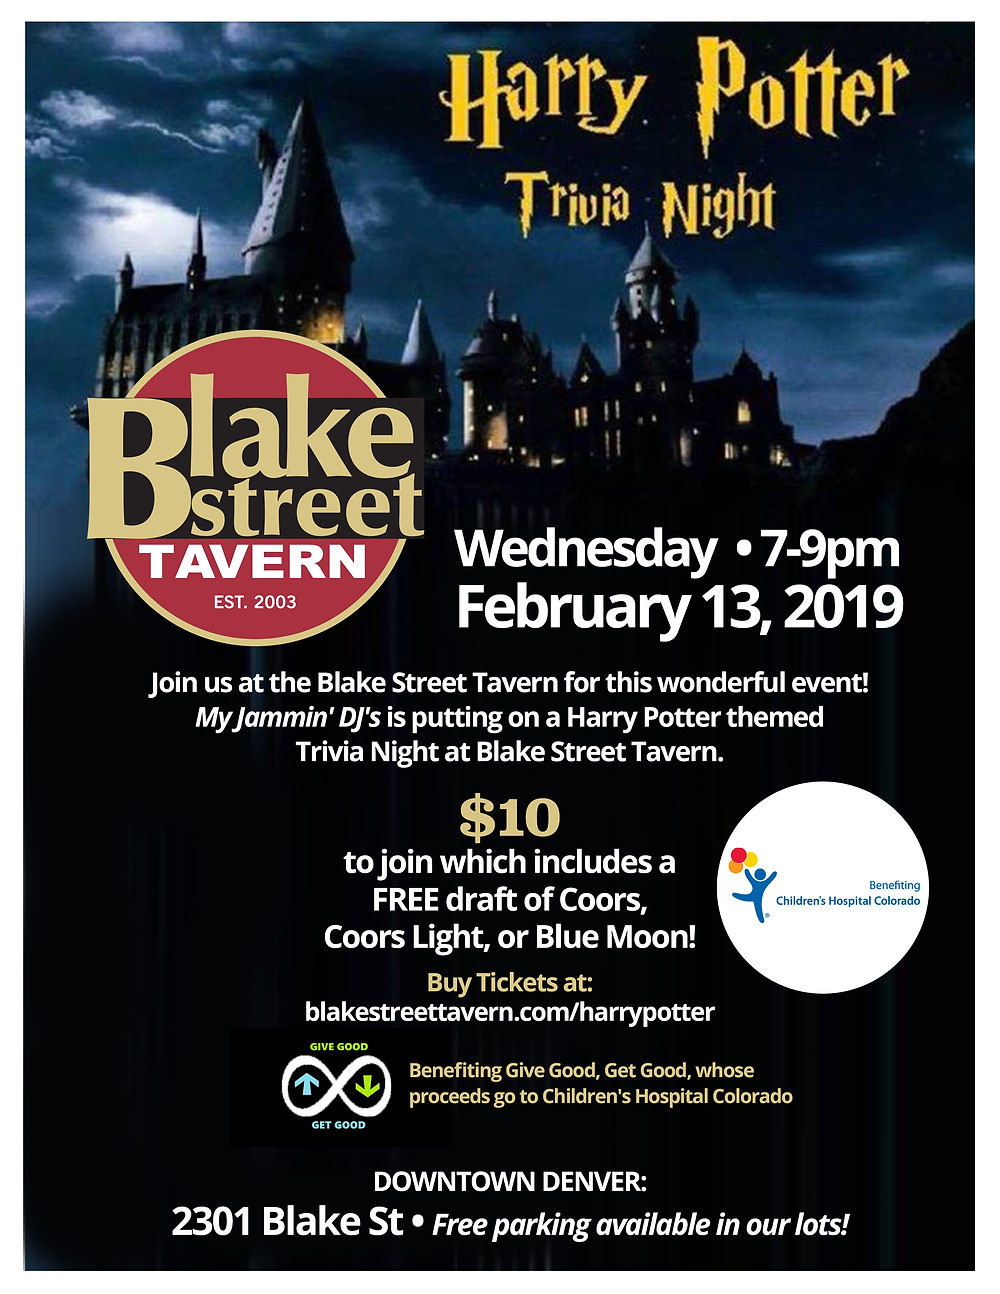 Harry Potter Trivia Night benefiting Children's Hospital Colorado at Blake Street Tavern in Downtown Denver